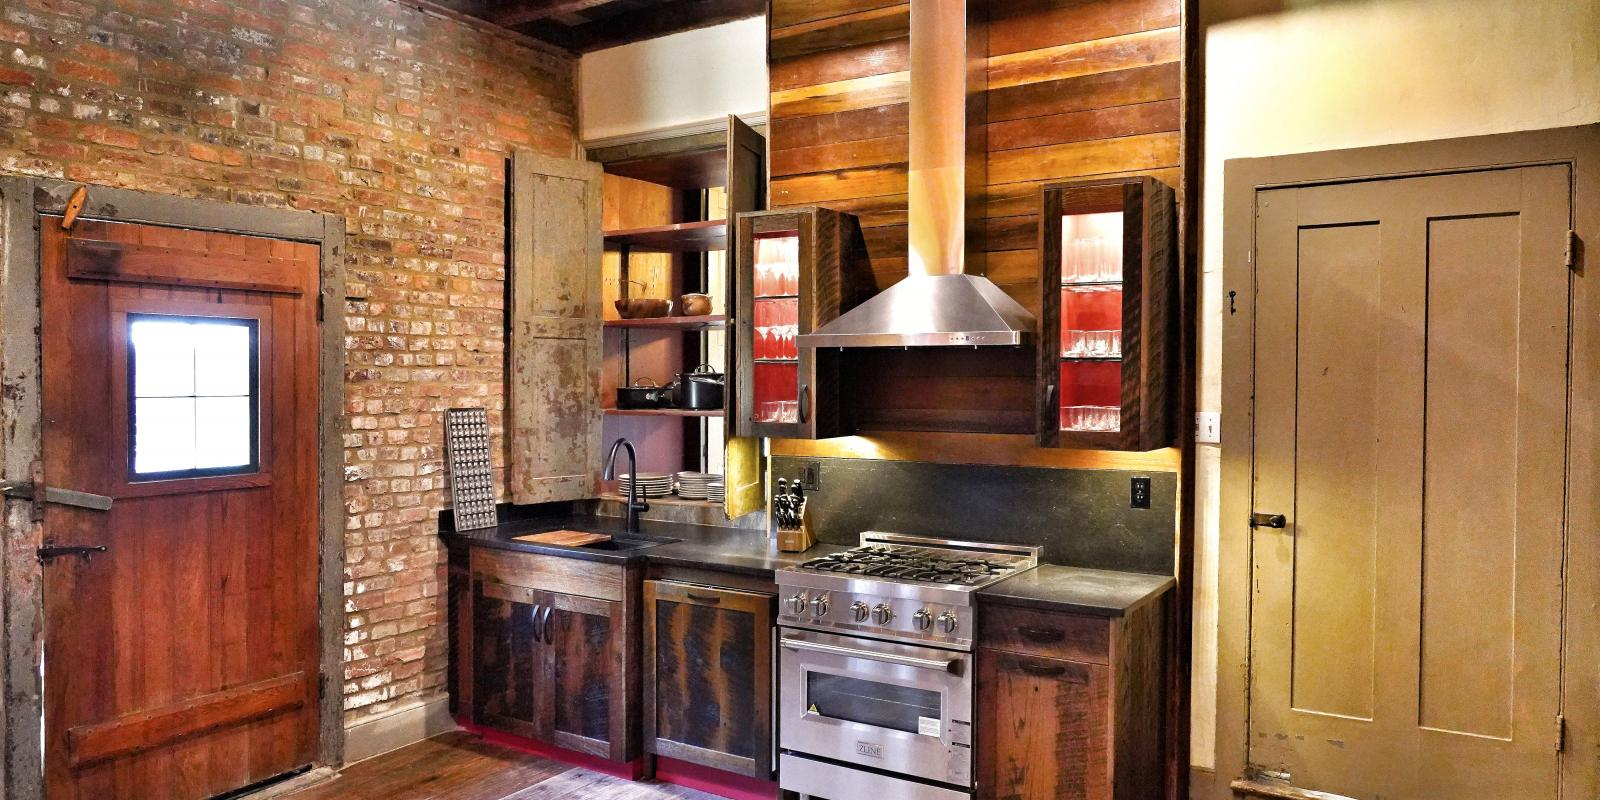 Historic-meets-modern kitchen with high-end appliances and cookware